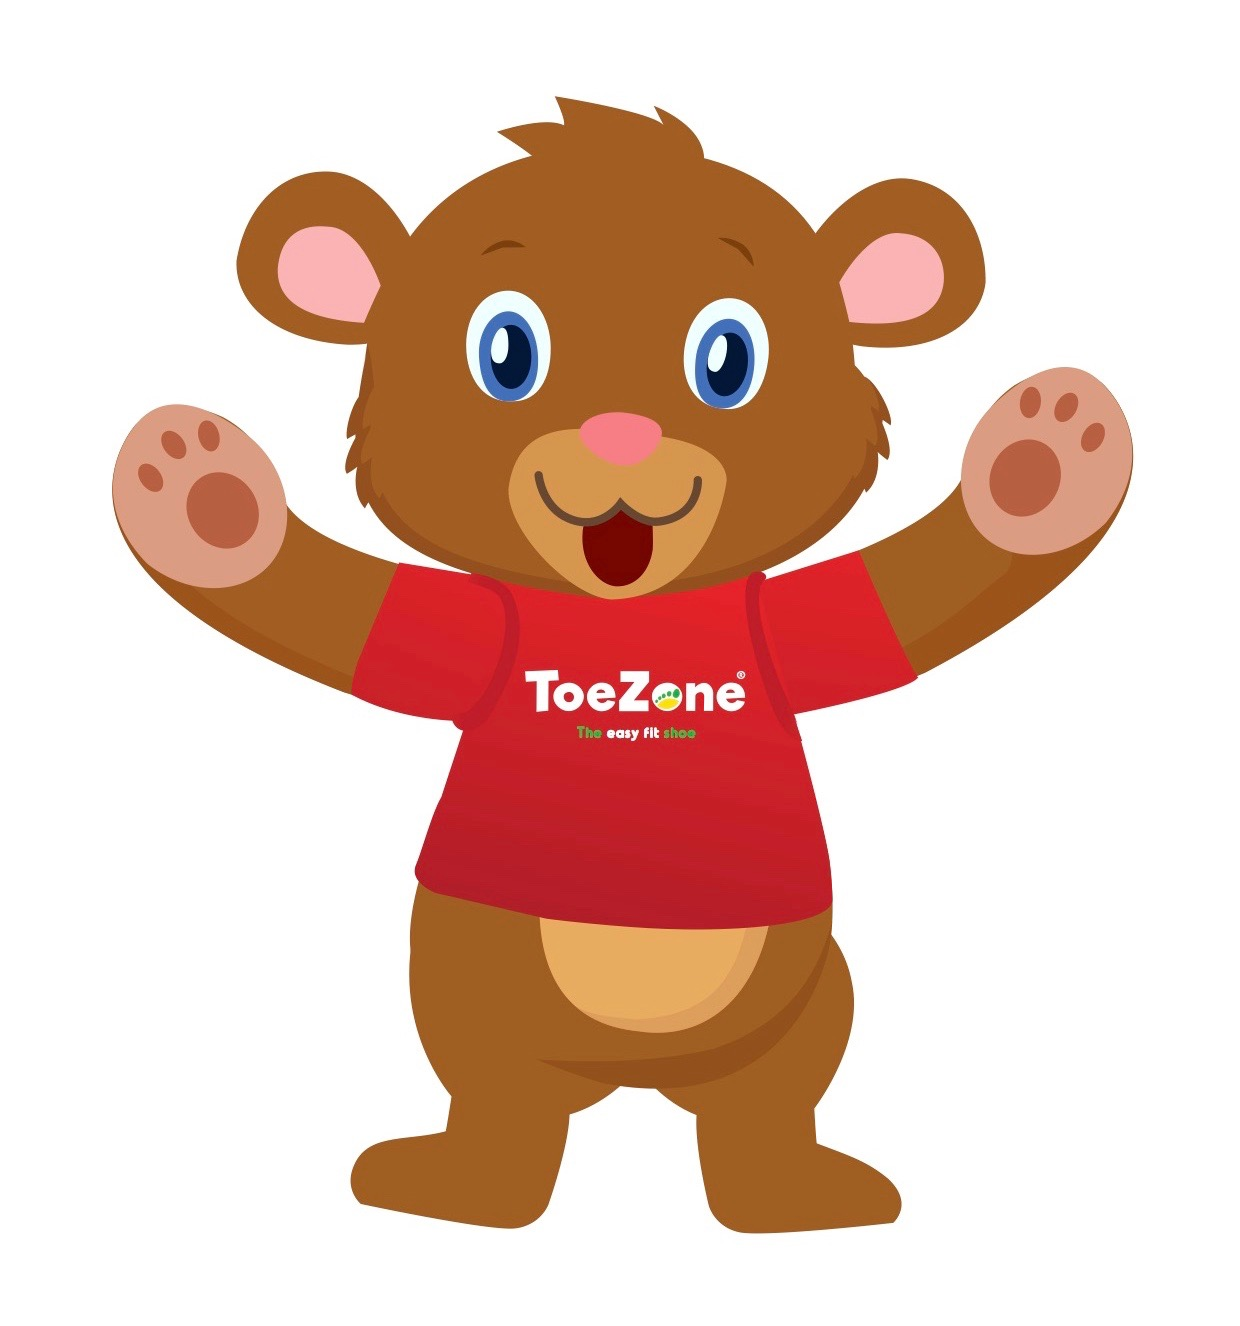 I'm ToeZone Ted! - I'M GOING TO SHOW YOU 3 SIMPLE STEPS TO THE PERFECT FIT!